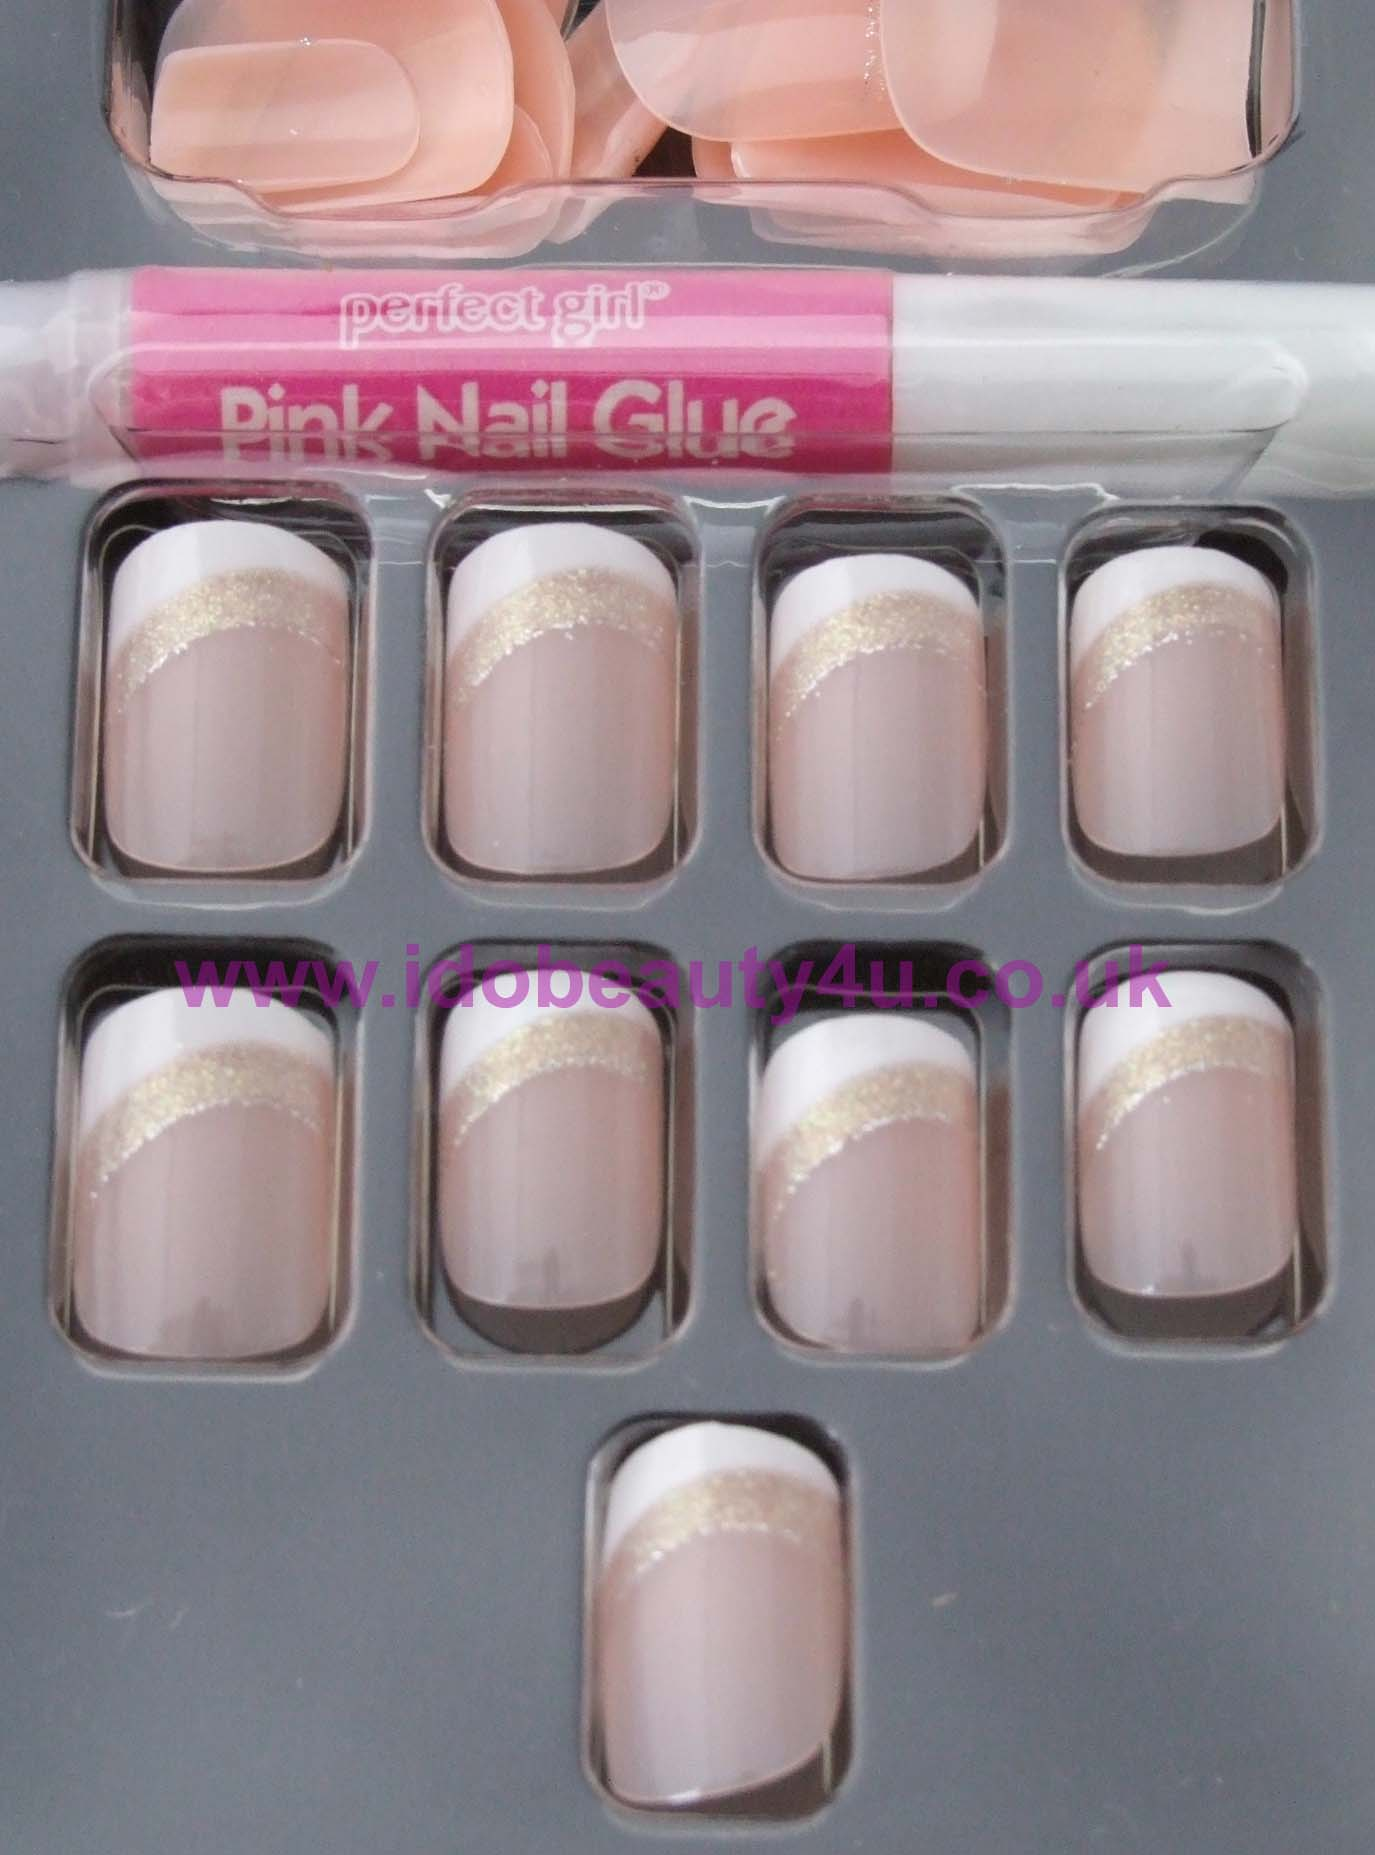 PERFECT GIRL PETITE GIRLS FALSE NAIL FRENCH PINK NAILS a